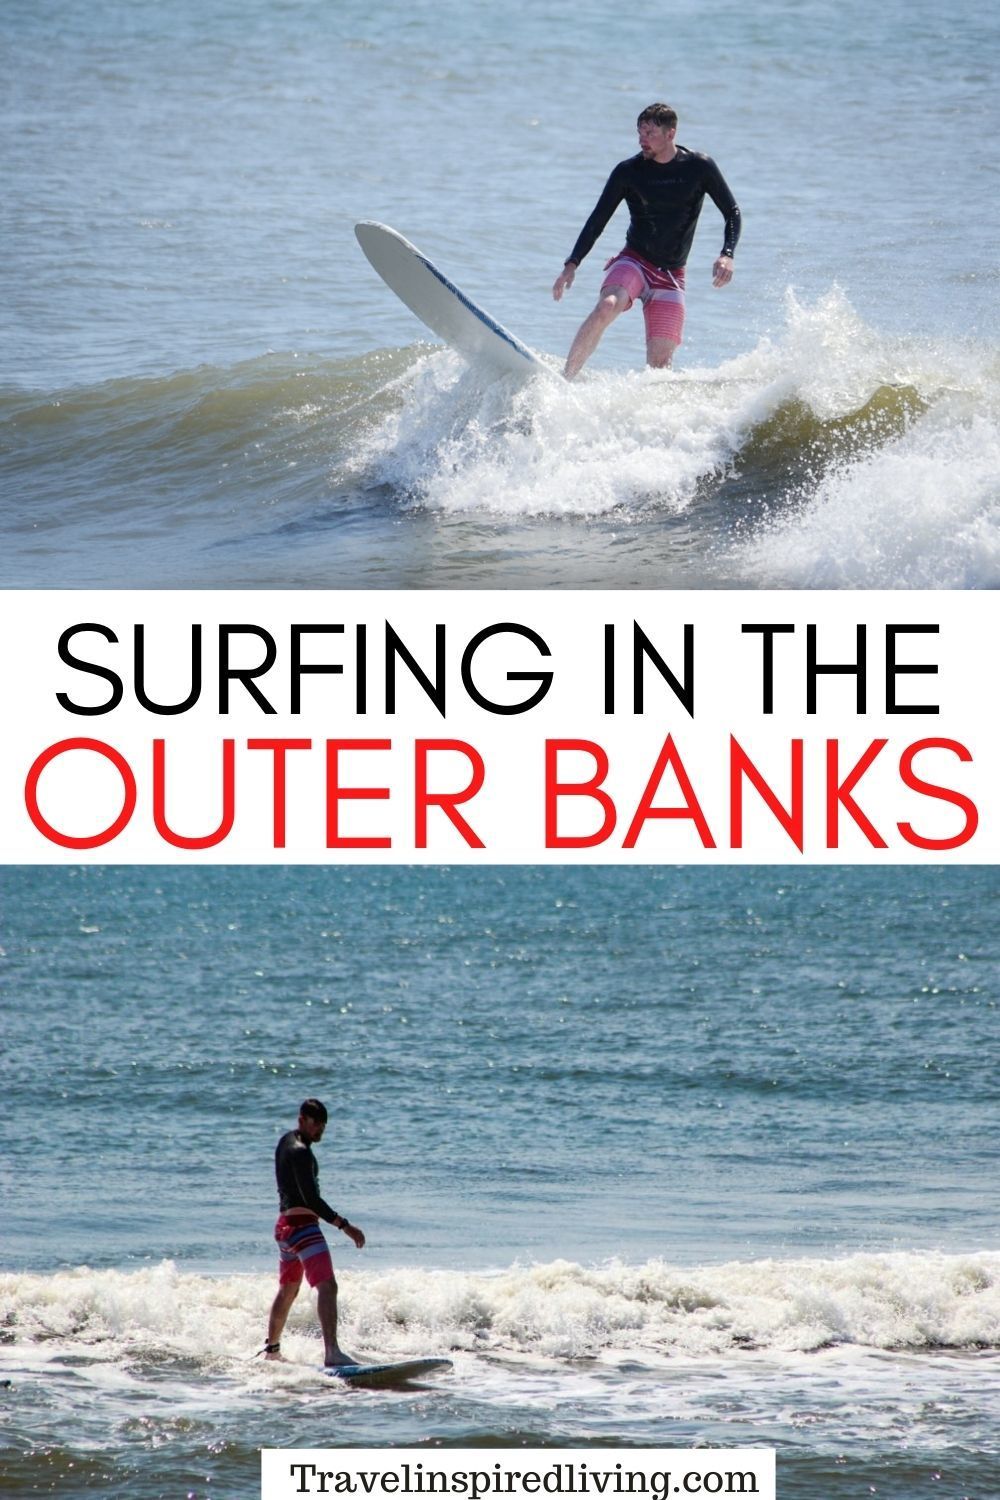 Go on vacation and go surfing in the Outer Banks.